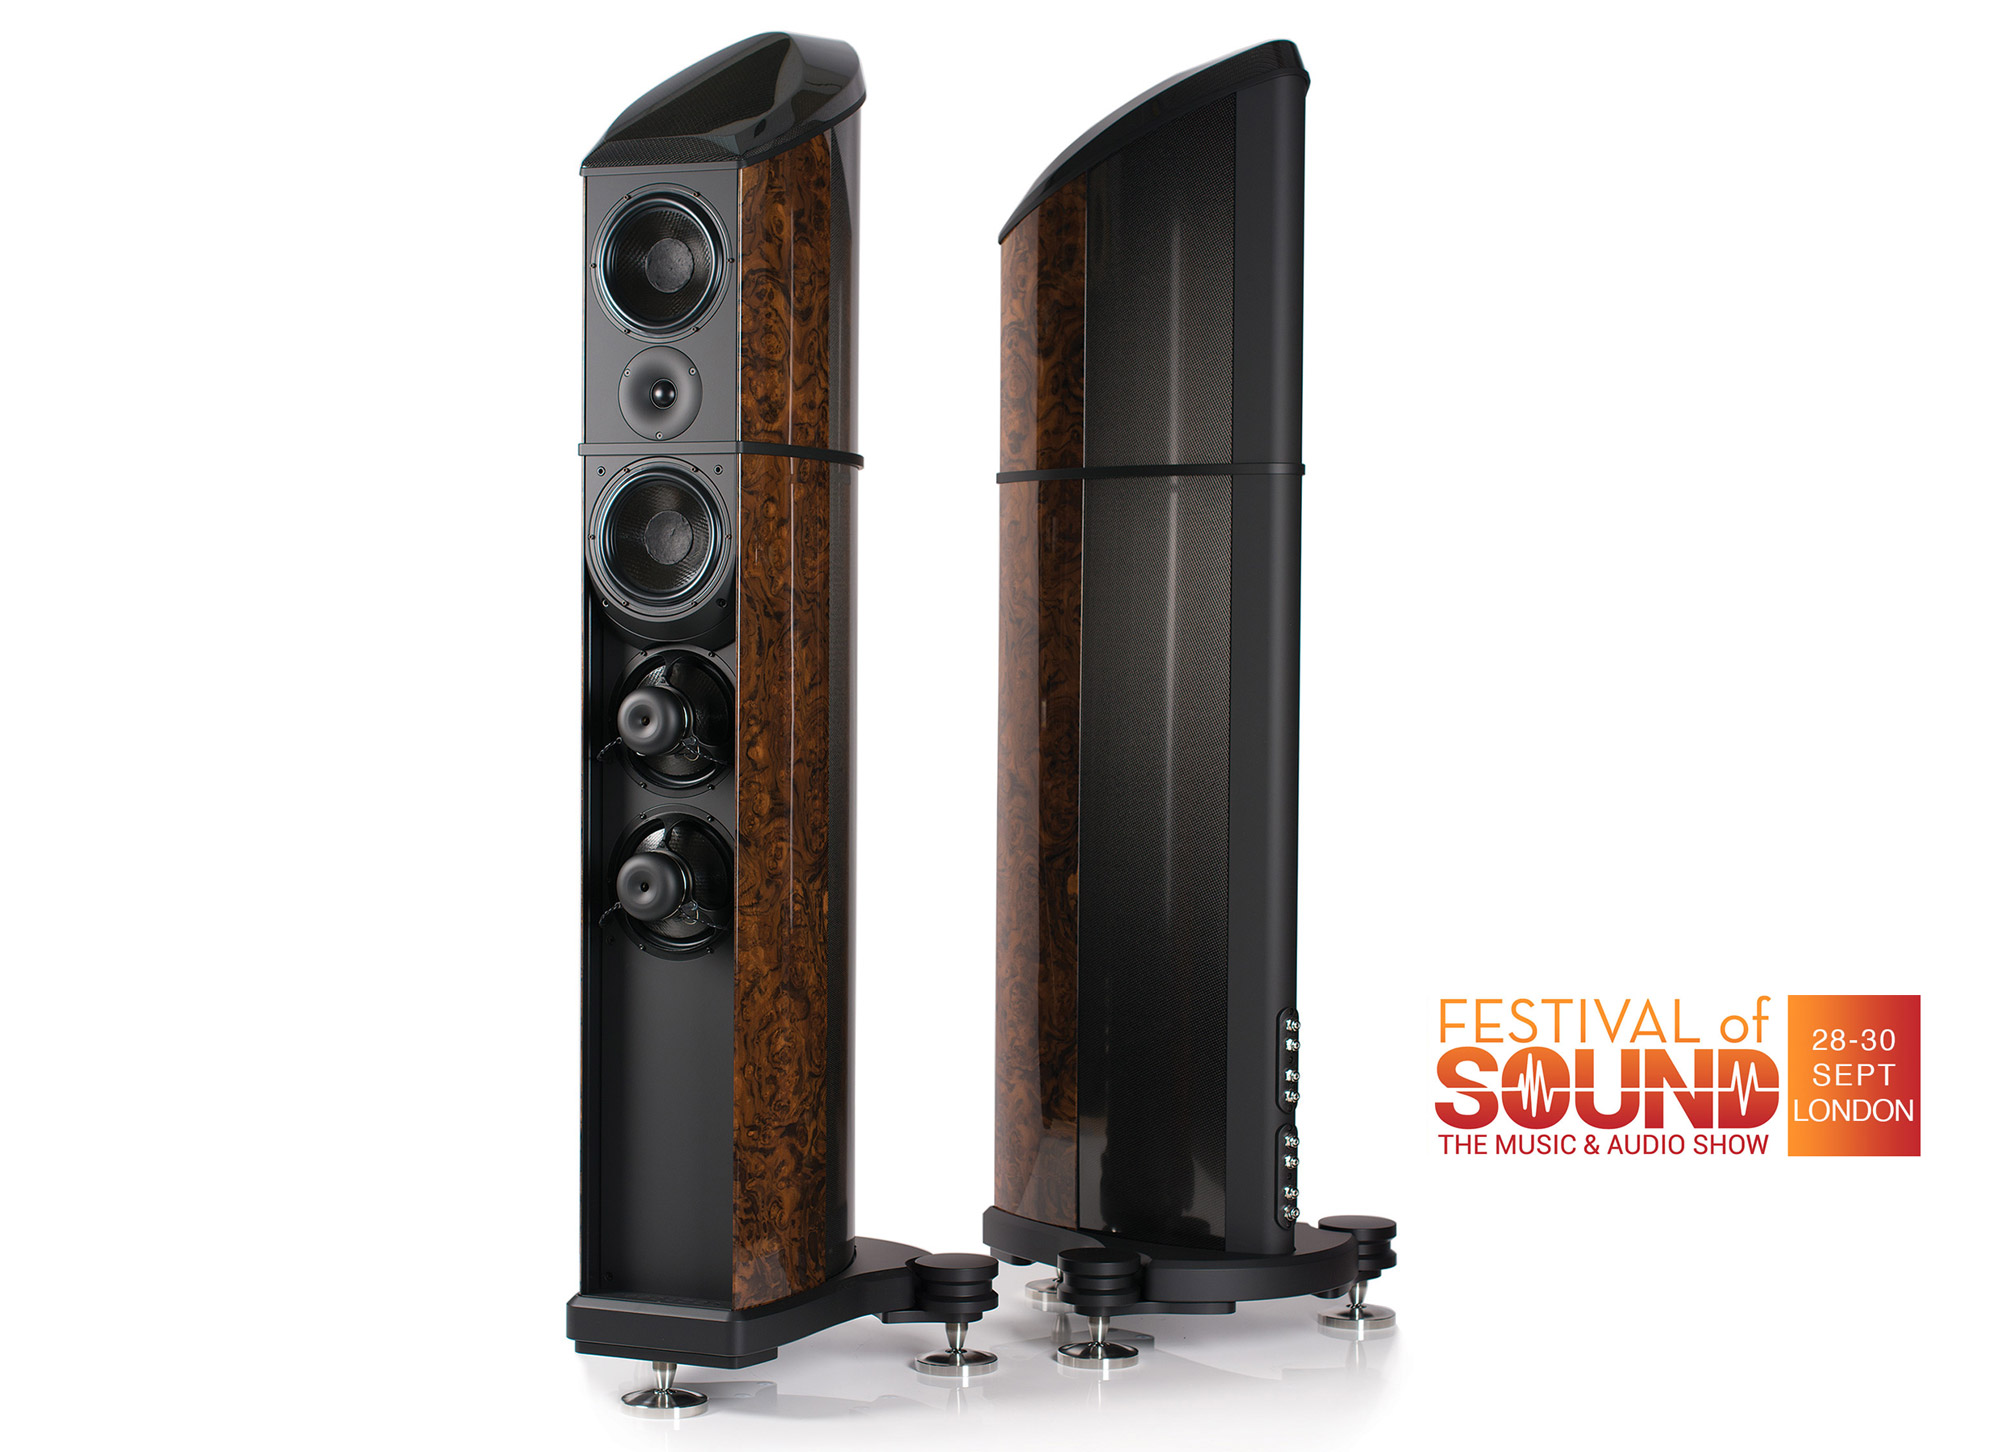 Wilson Benesch will demonstrate the award winning Resolution loudspeaker at the 'Festival of Sound' in Hammersmith, London this September